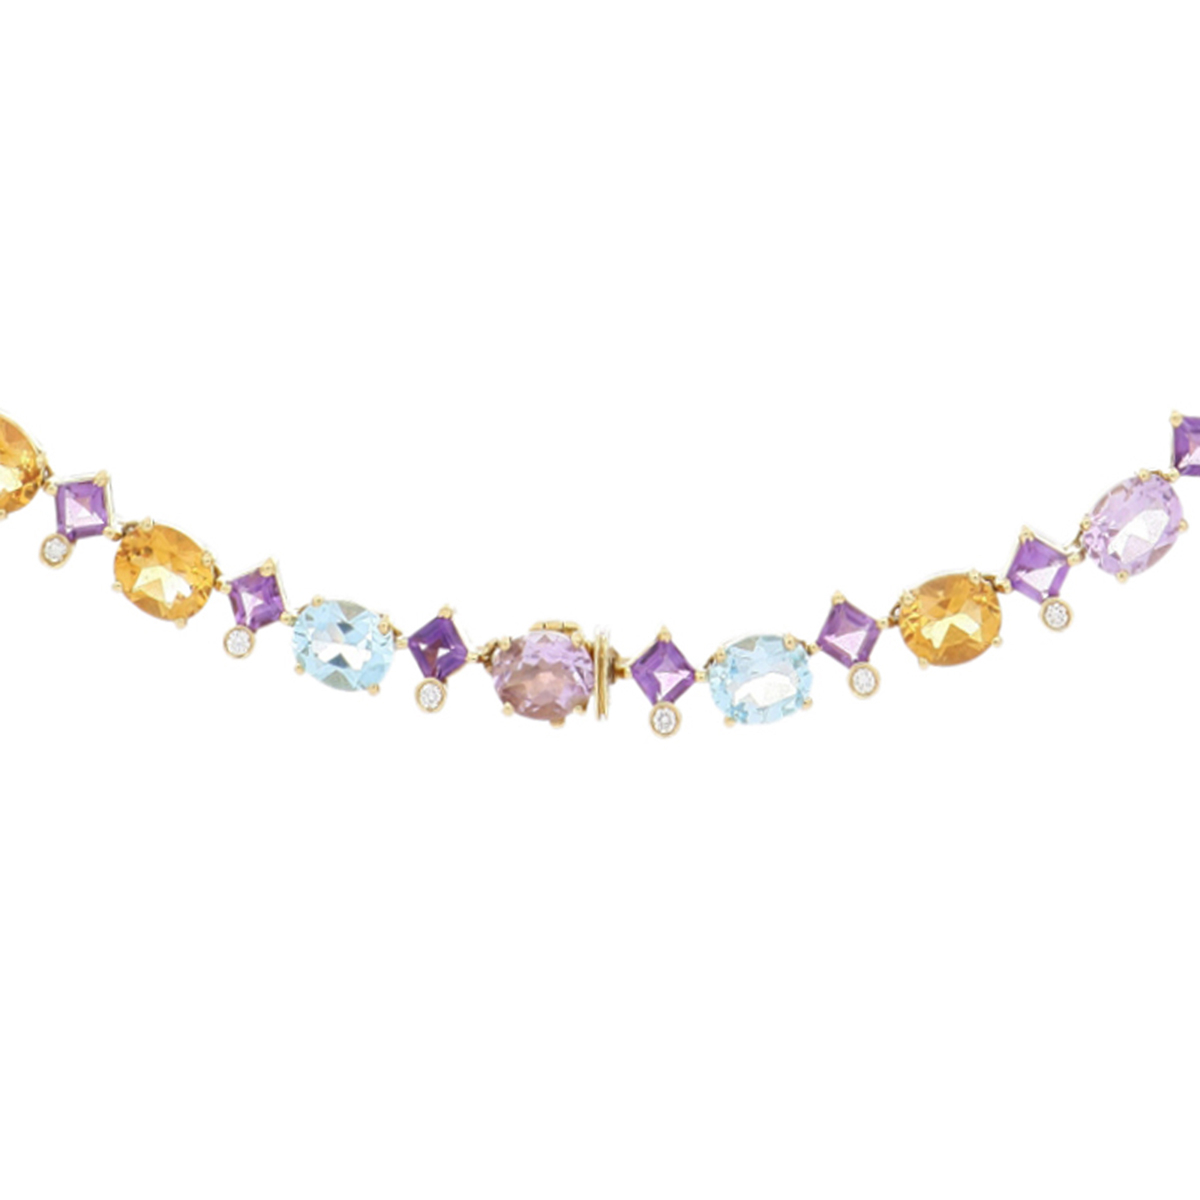 Yellow Gold Multi-Gem Necklace with Diamonds